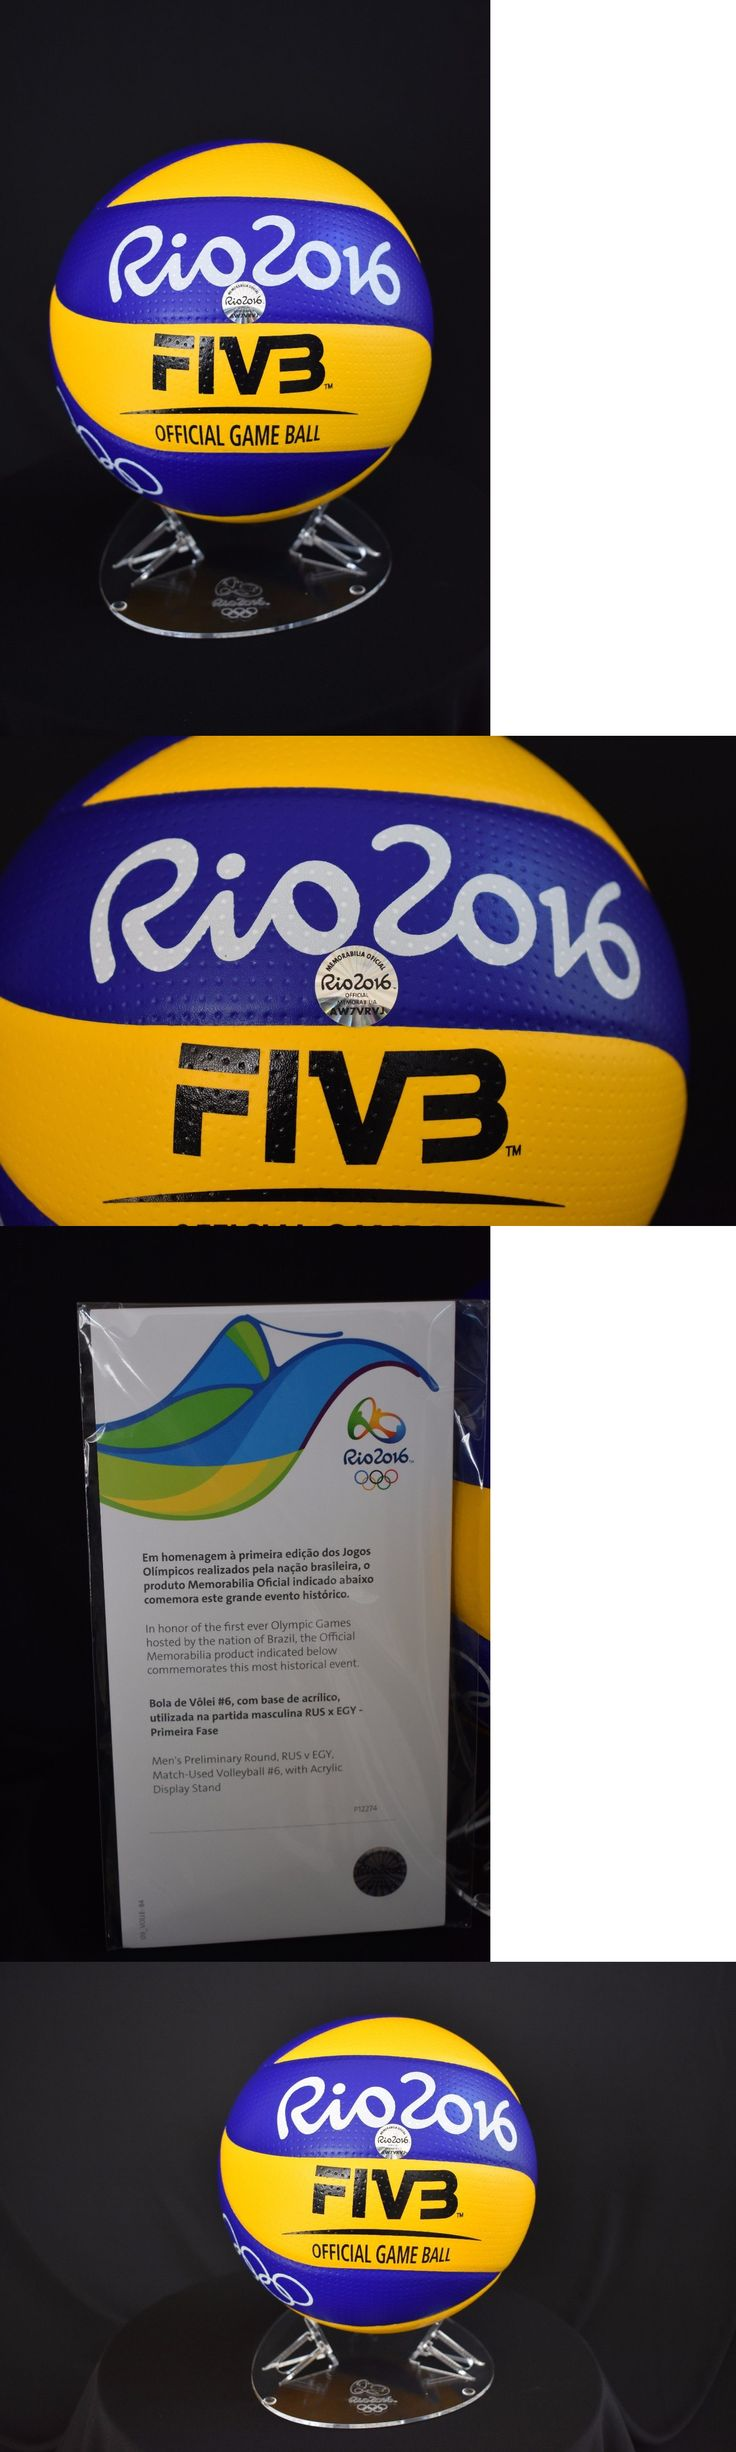 Olympics 27291: Rio 2016 Olympics Game Used Volleyball Team Russia V. Egypt Coa And Hologram! -> BUY IT NOW ONLY: $250 on eBay!